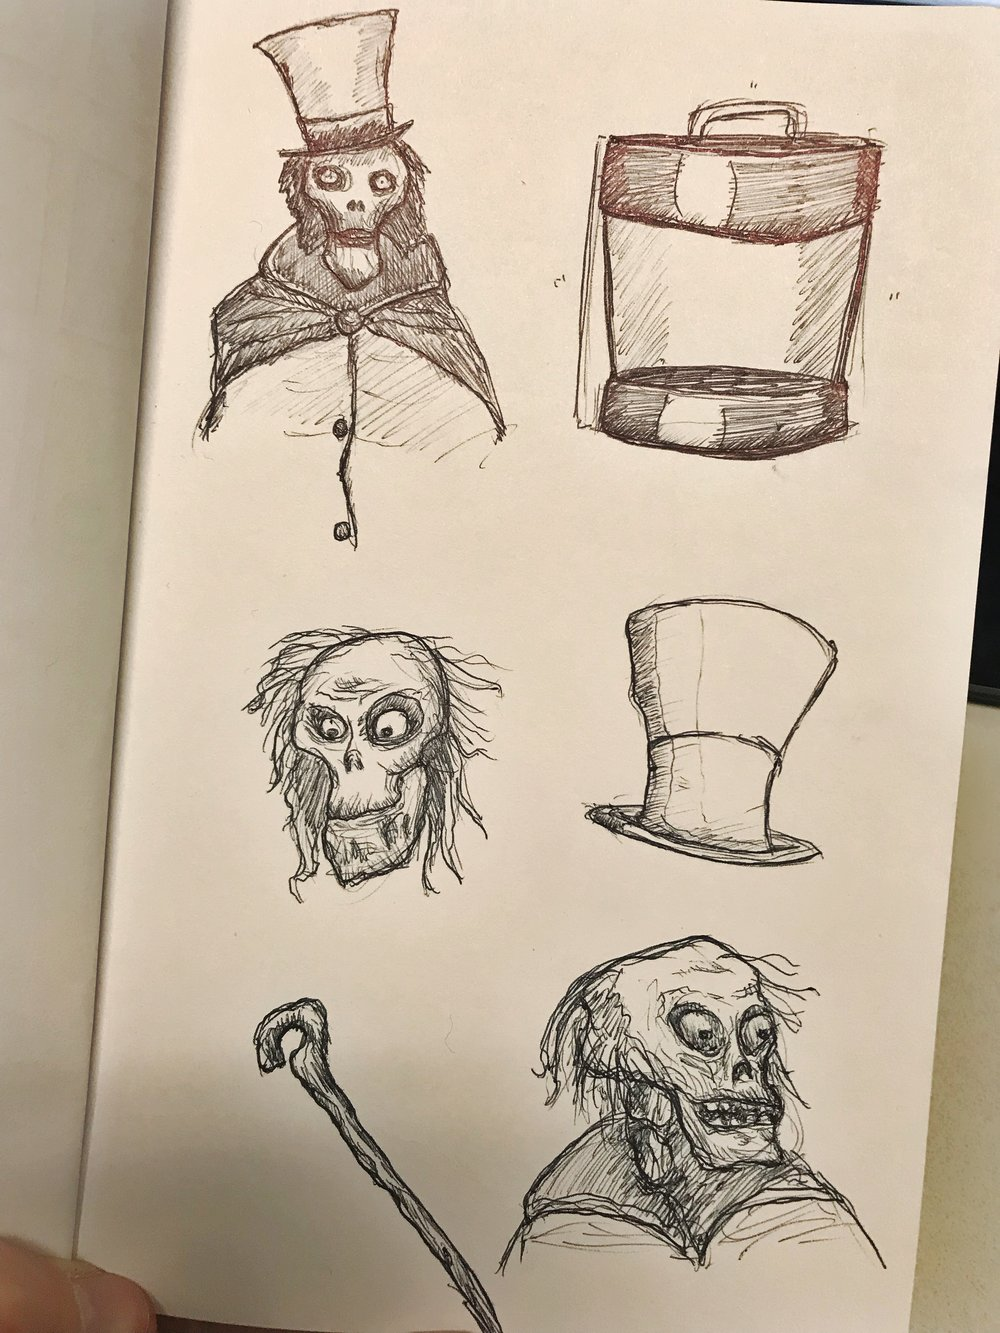 Some random ghost sketches